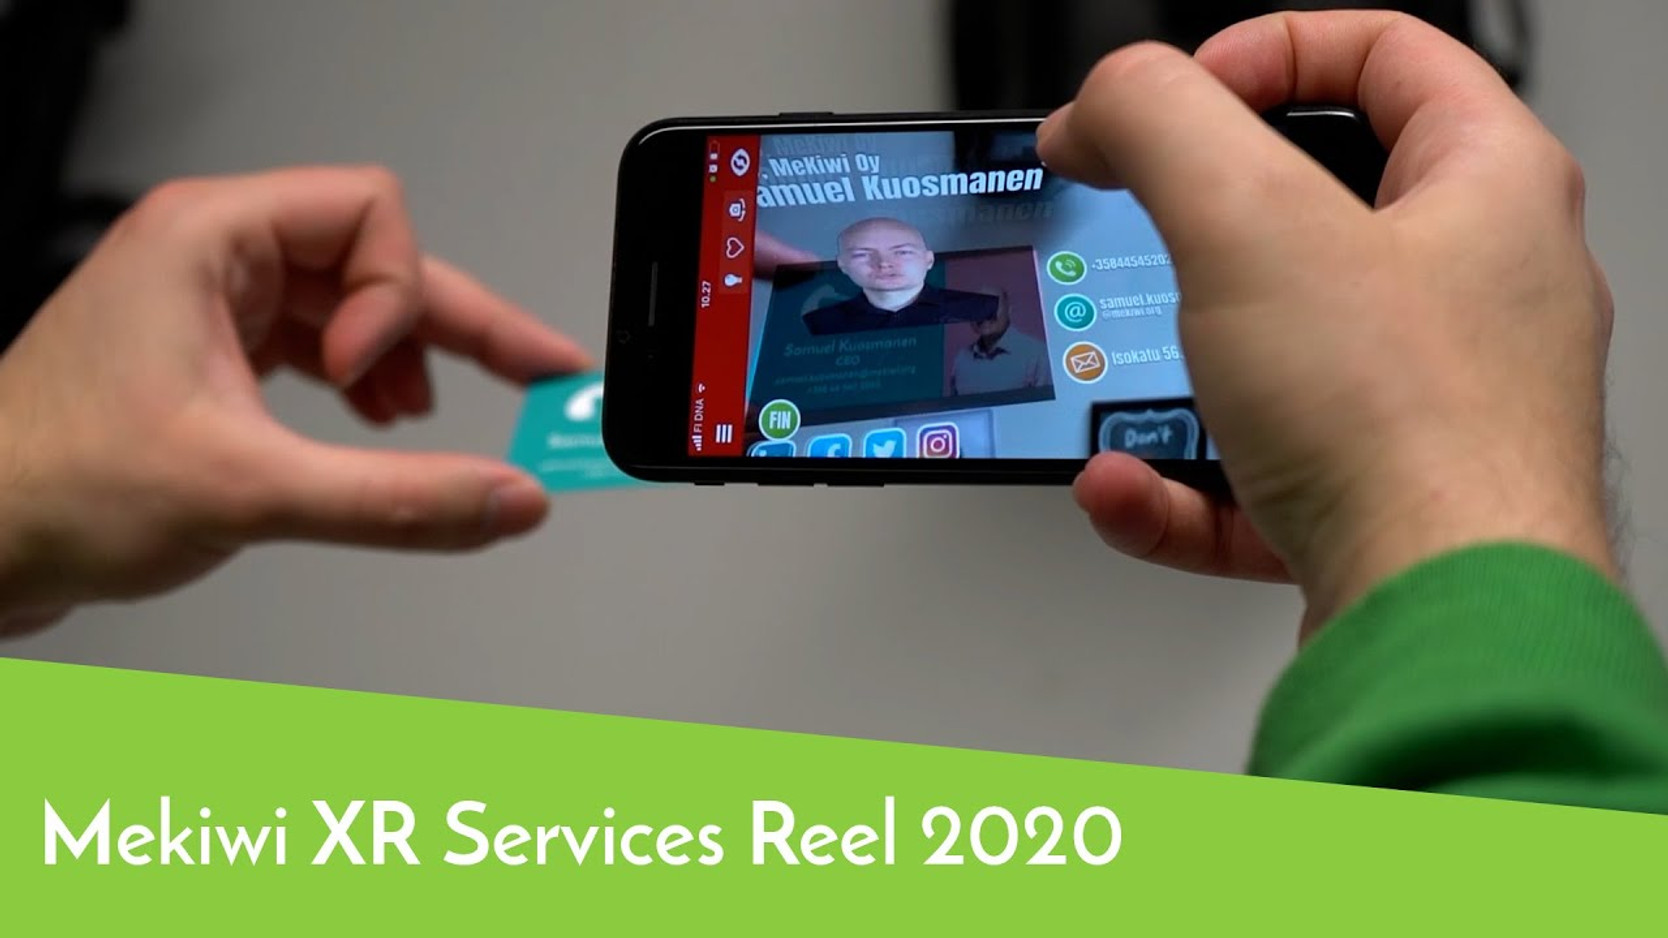 MeKiwi - XR Services Showreel 2020